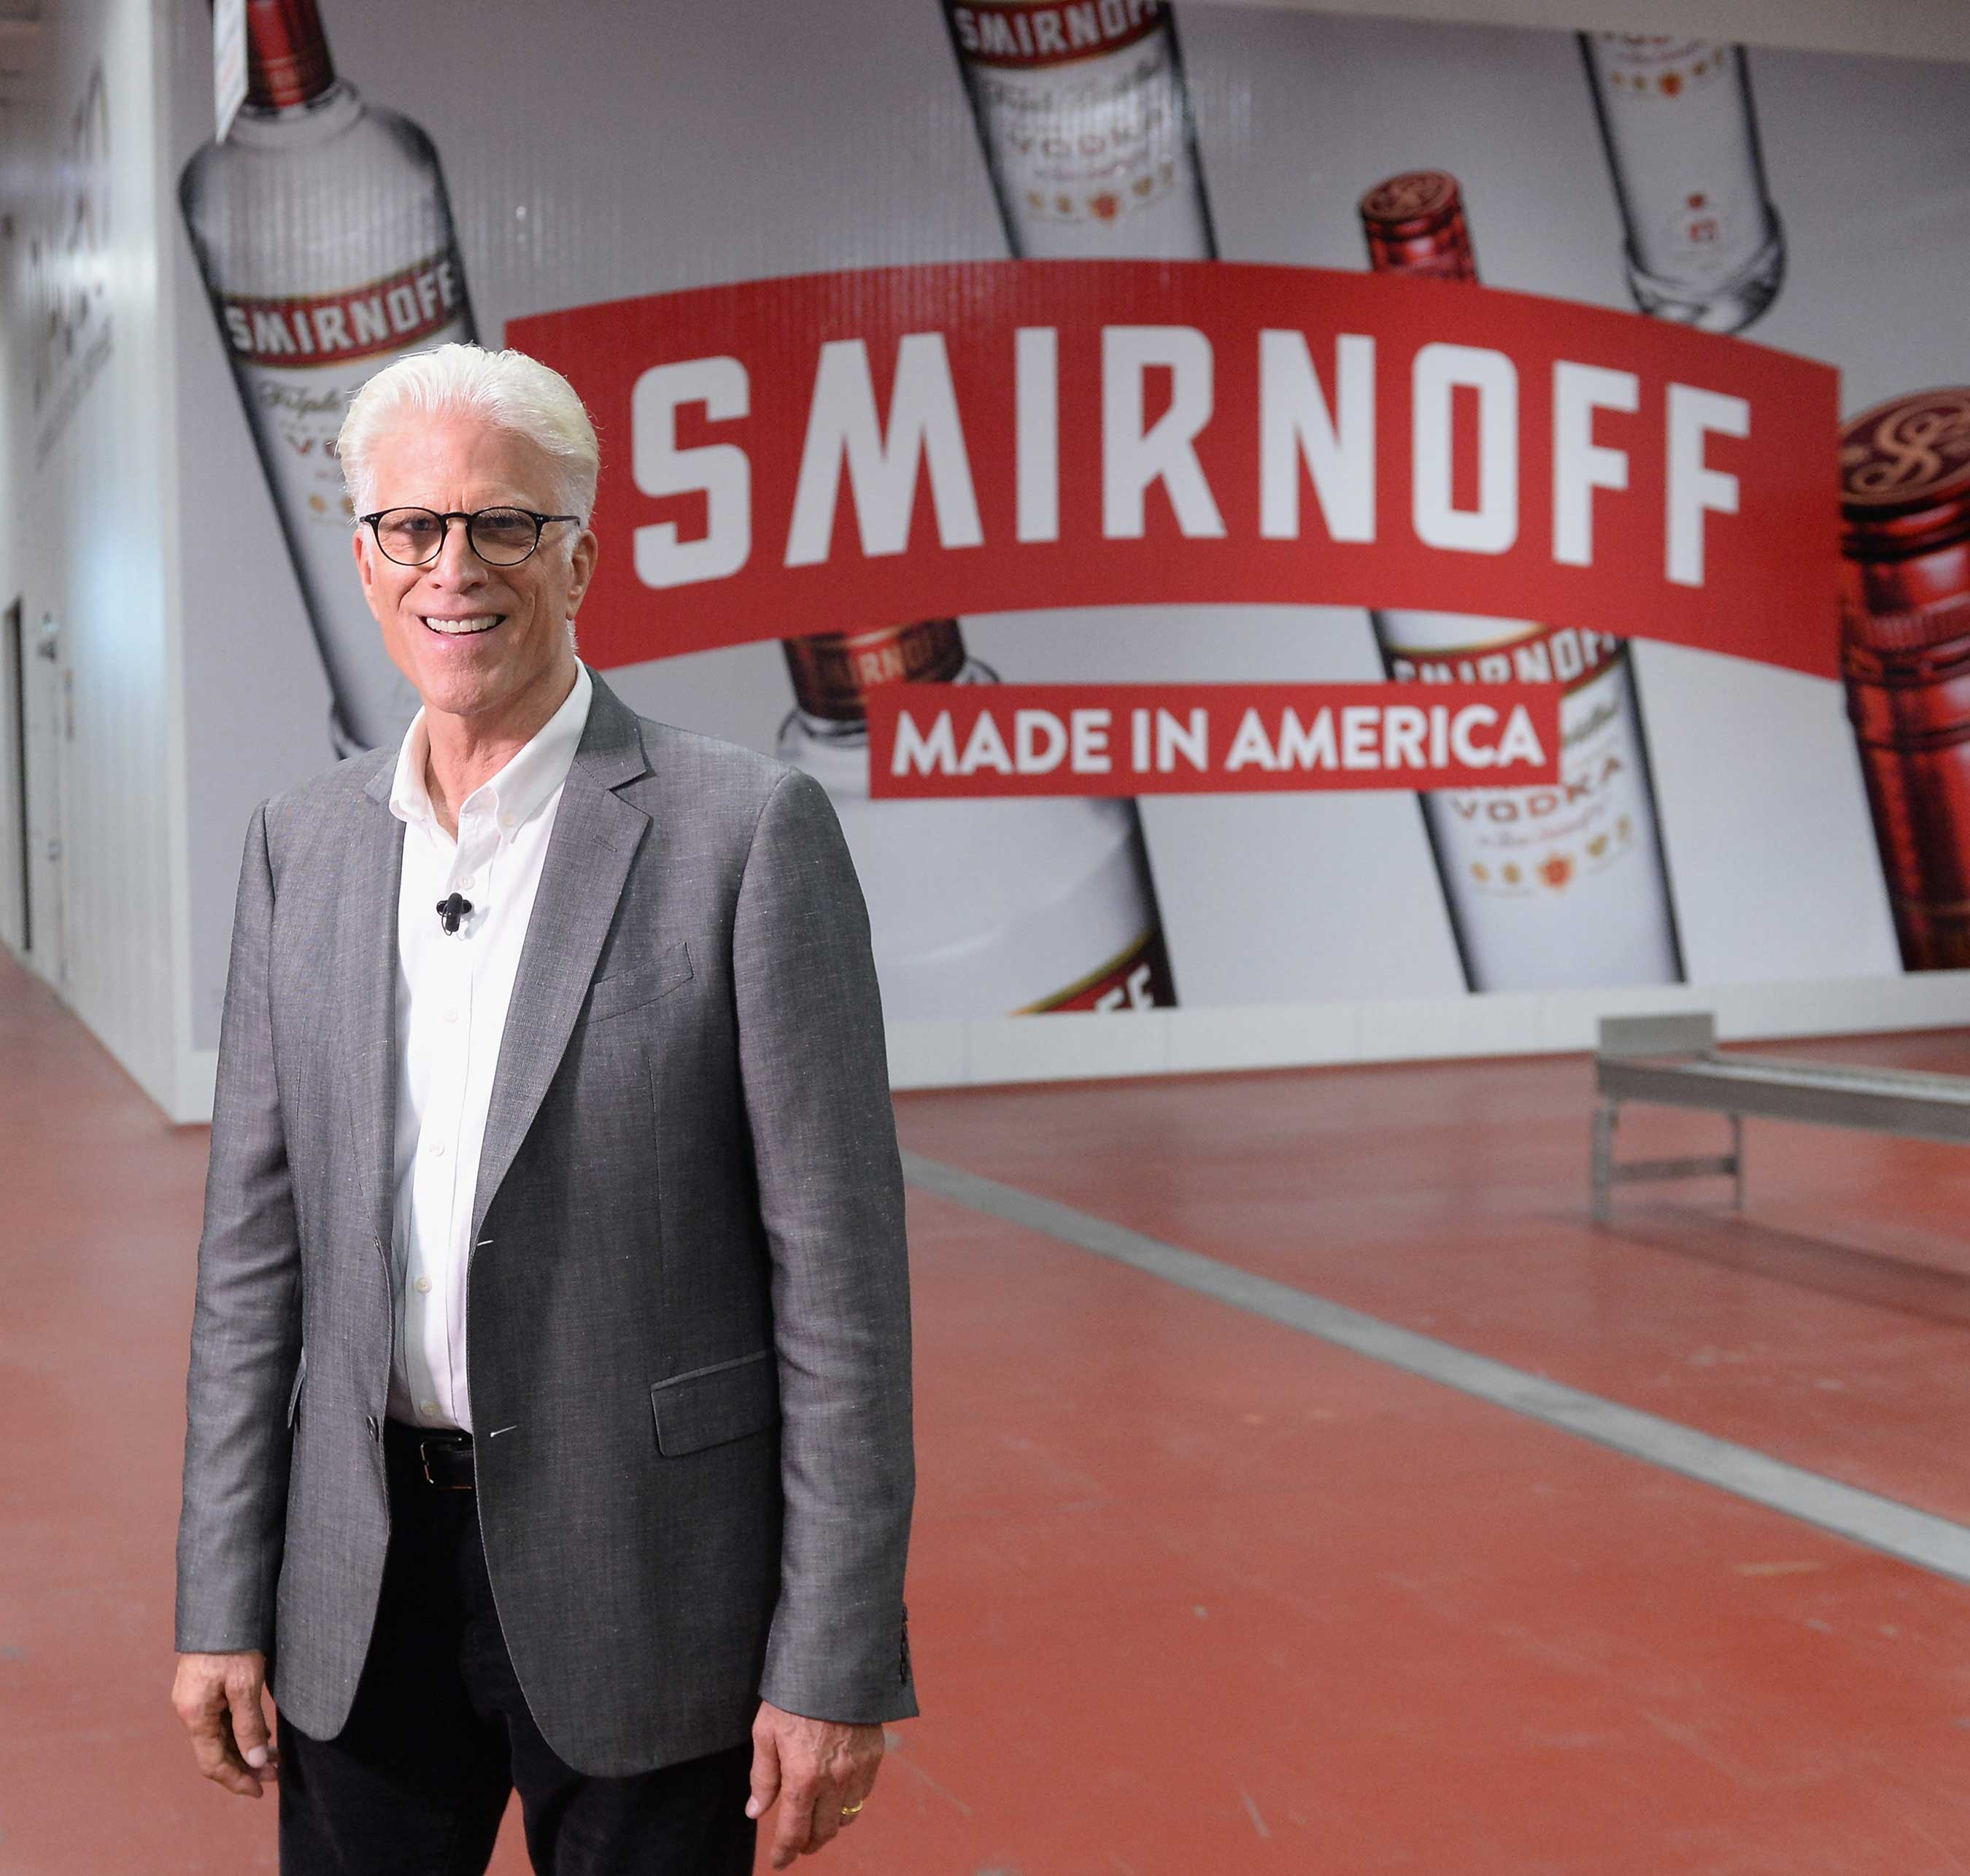 Ted Danson Heads To The Diageo Facility in Plainfield, Illinois To Meet the Hard-working People Behind SMIRNOFF, America's Most-awarded Vodka, on October 4, 2017